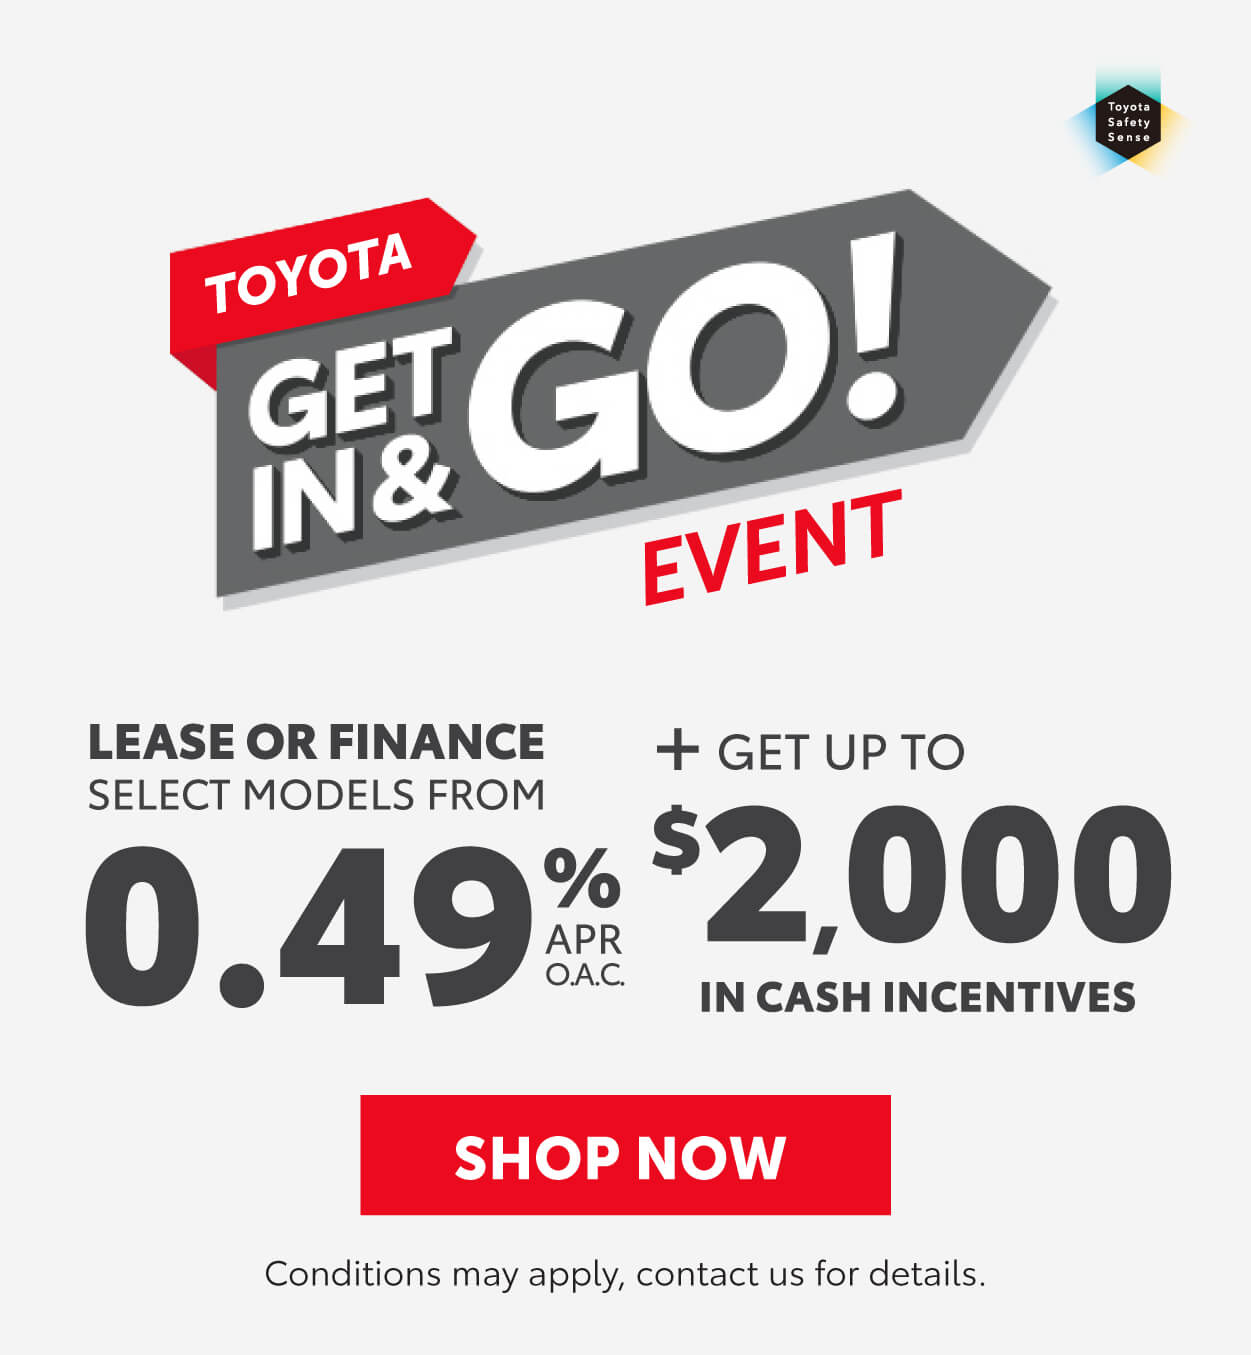 Toyota Get in and go event Georgetown Toyota